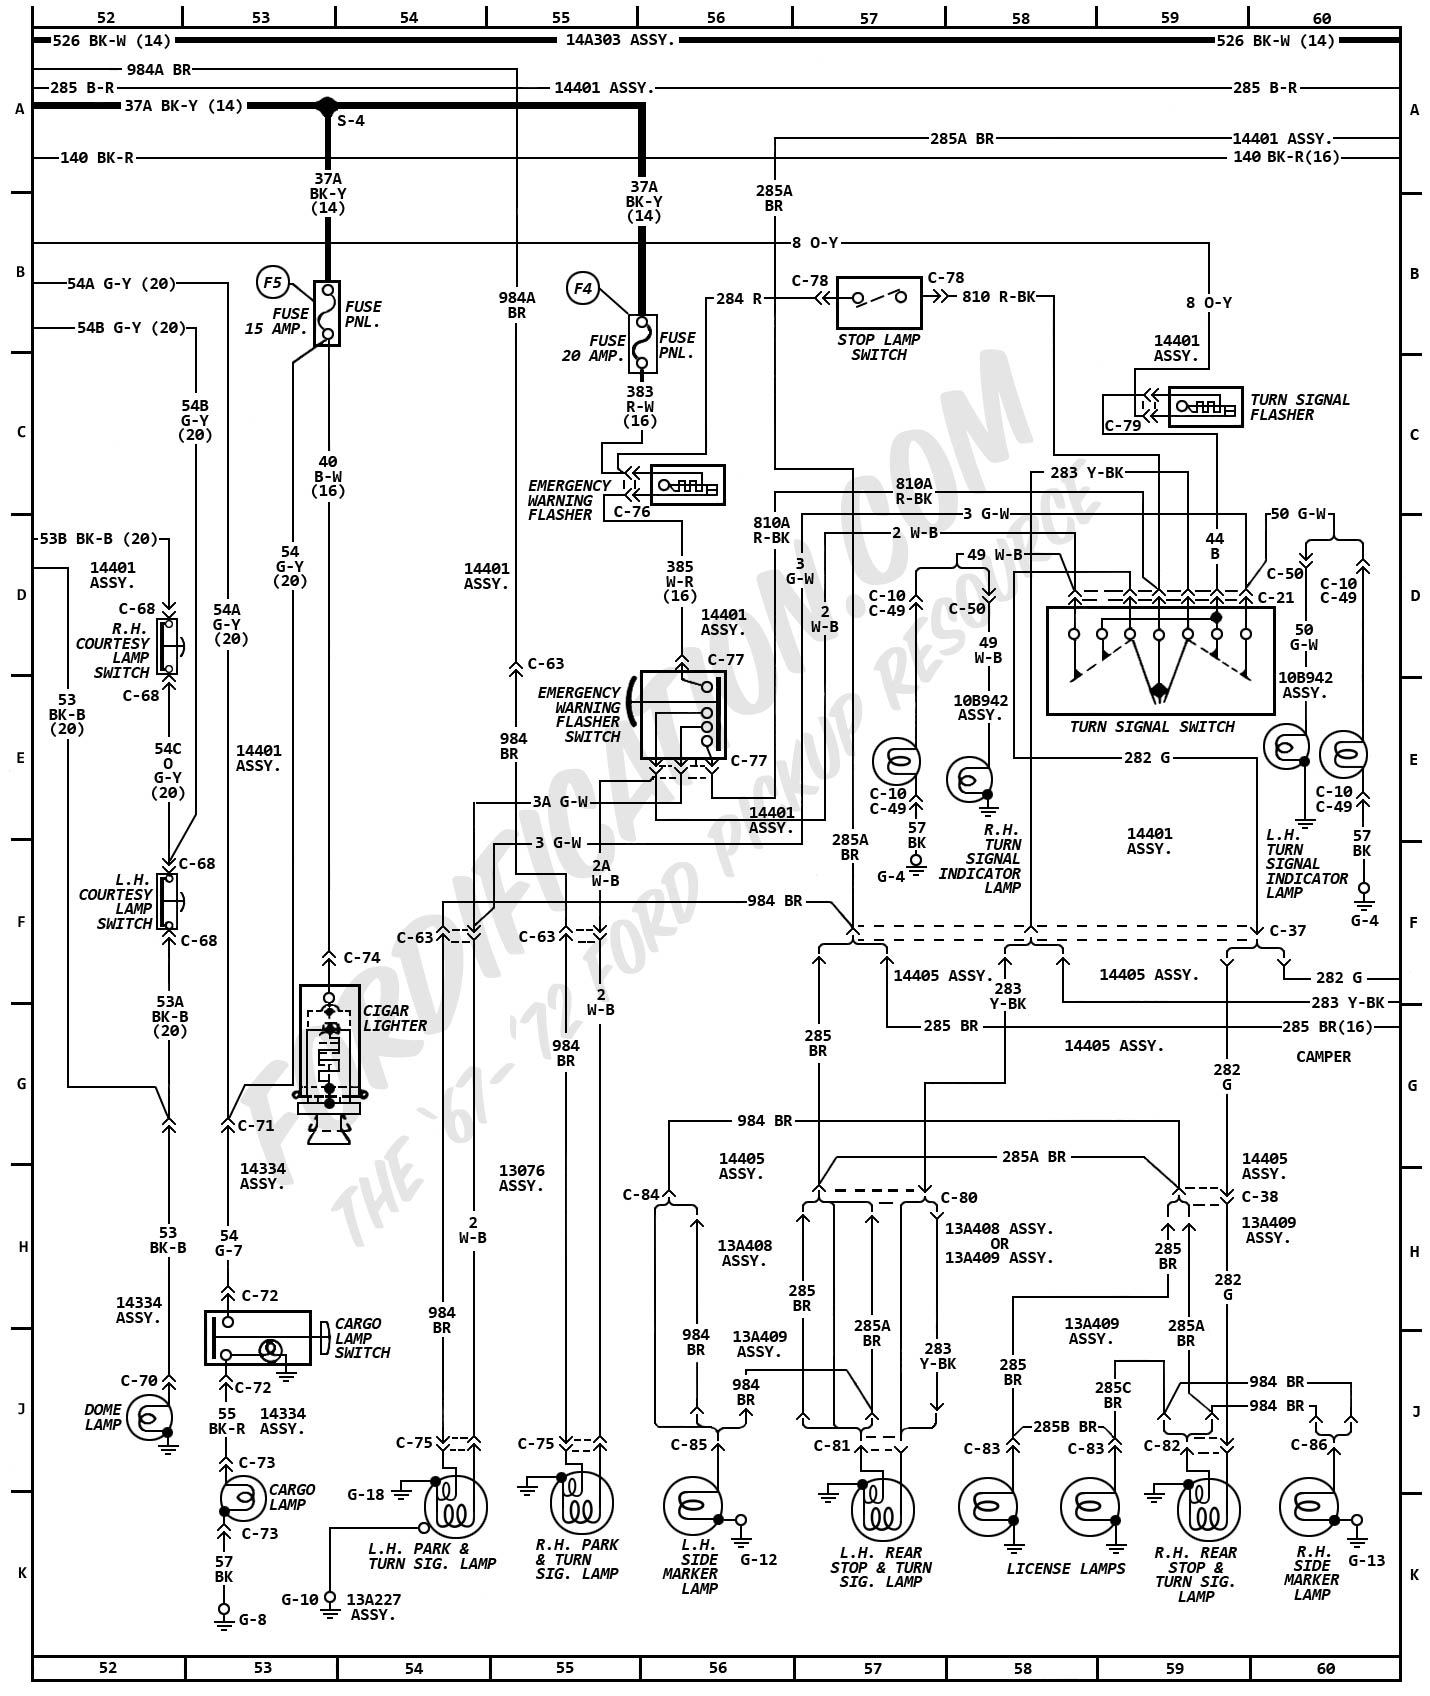 71 Ford F100 Wiring Diagram Detailed Schematic Diagrams 1973 Truck Electrical Schematics 1972